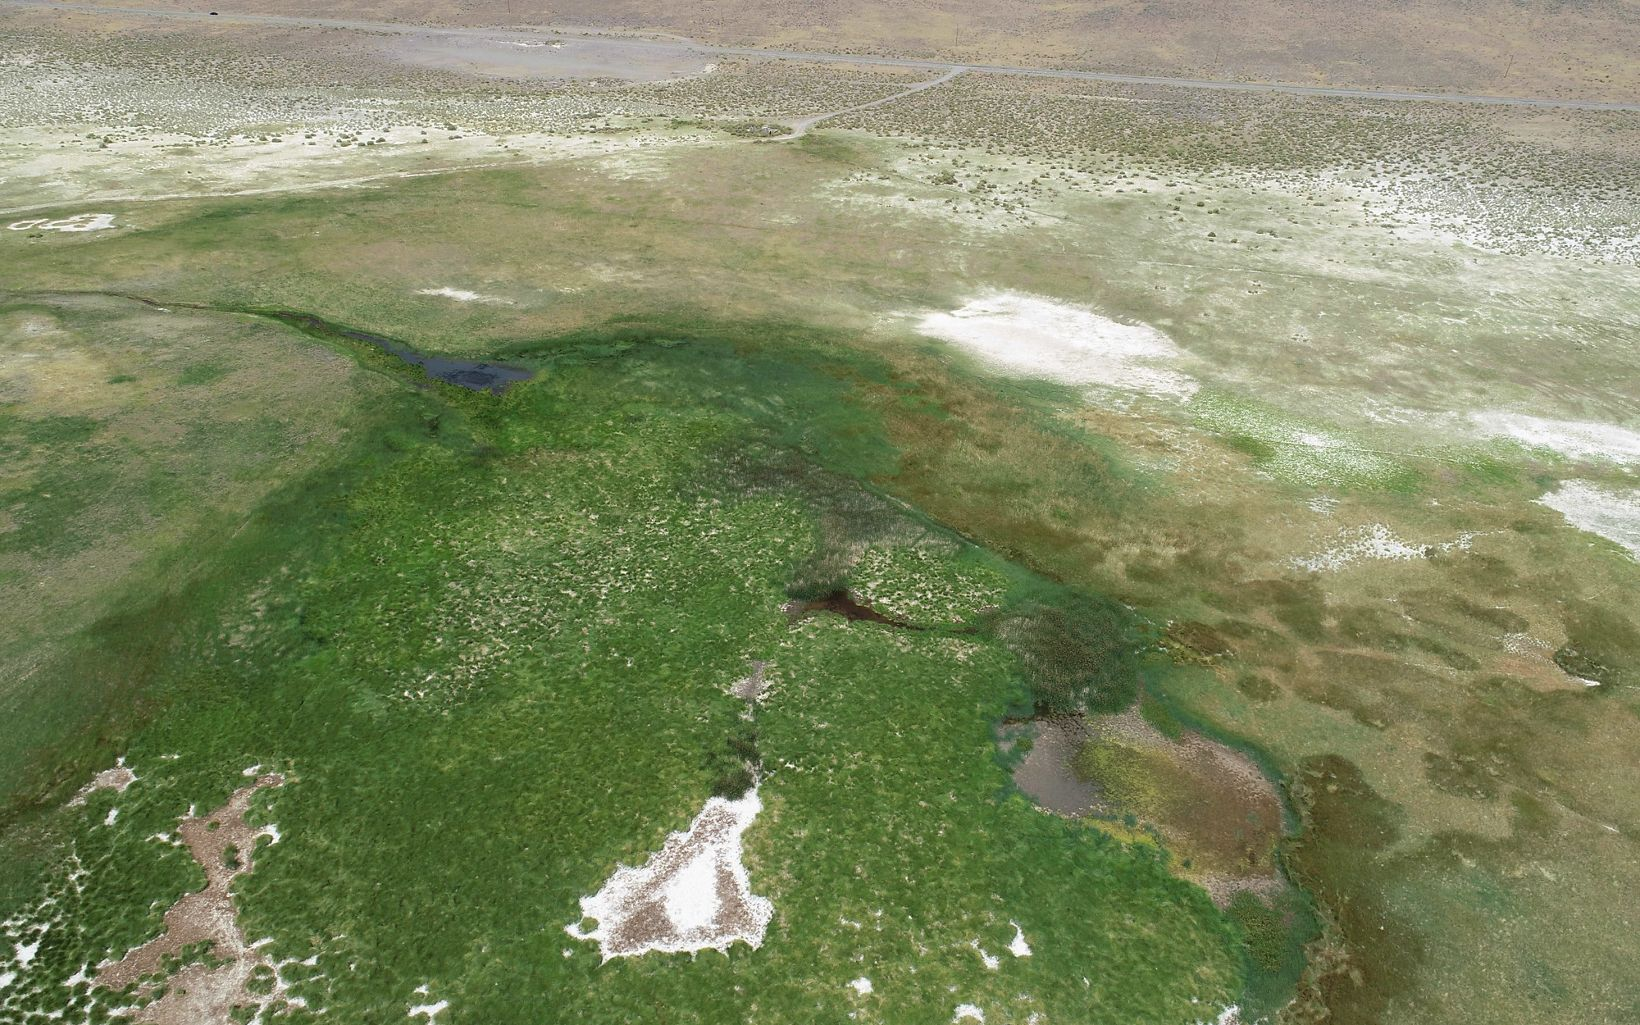 Aerial photo of Baltazor Hot Springs, one of many hot springs that occur throughout Nevada.